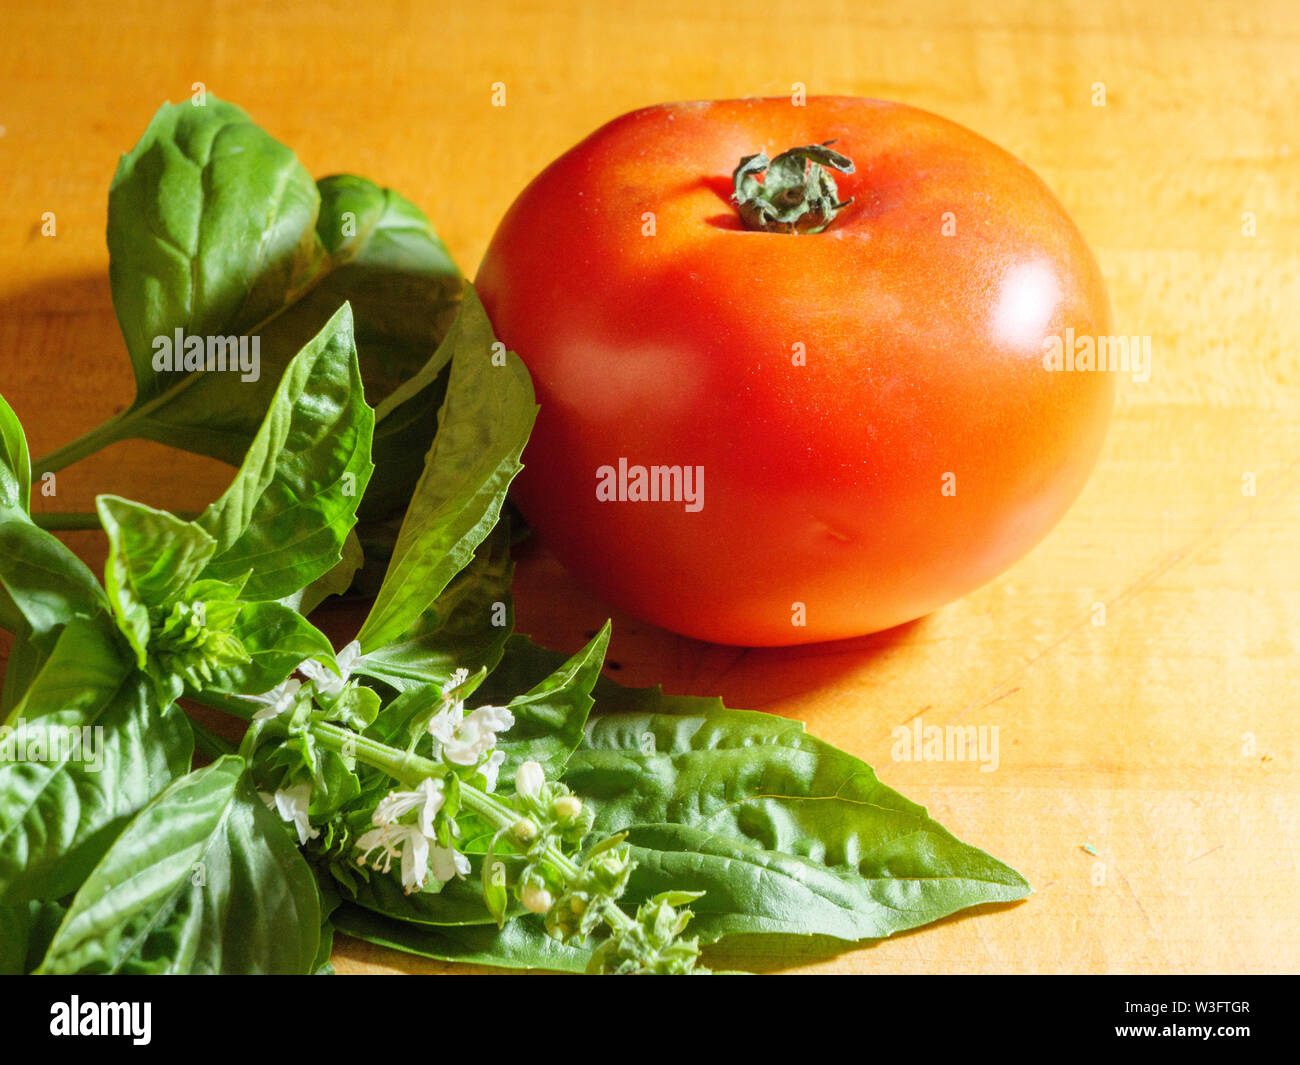 Tomato and basil on butcher block surface. - Stock Image